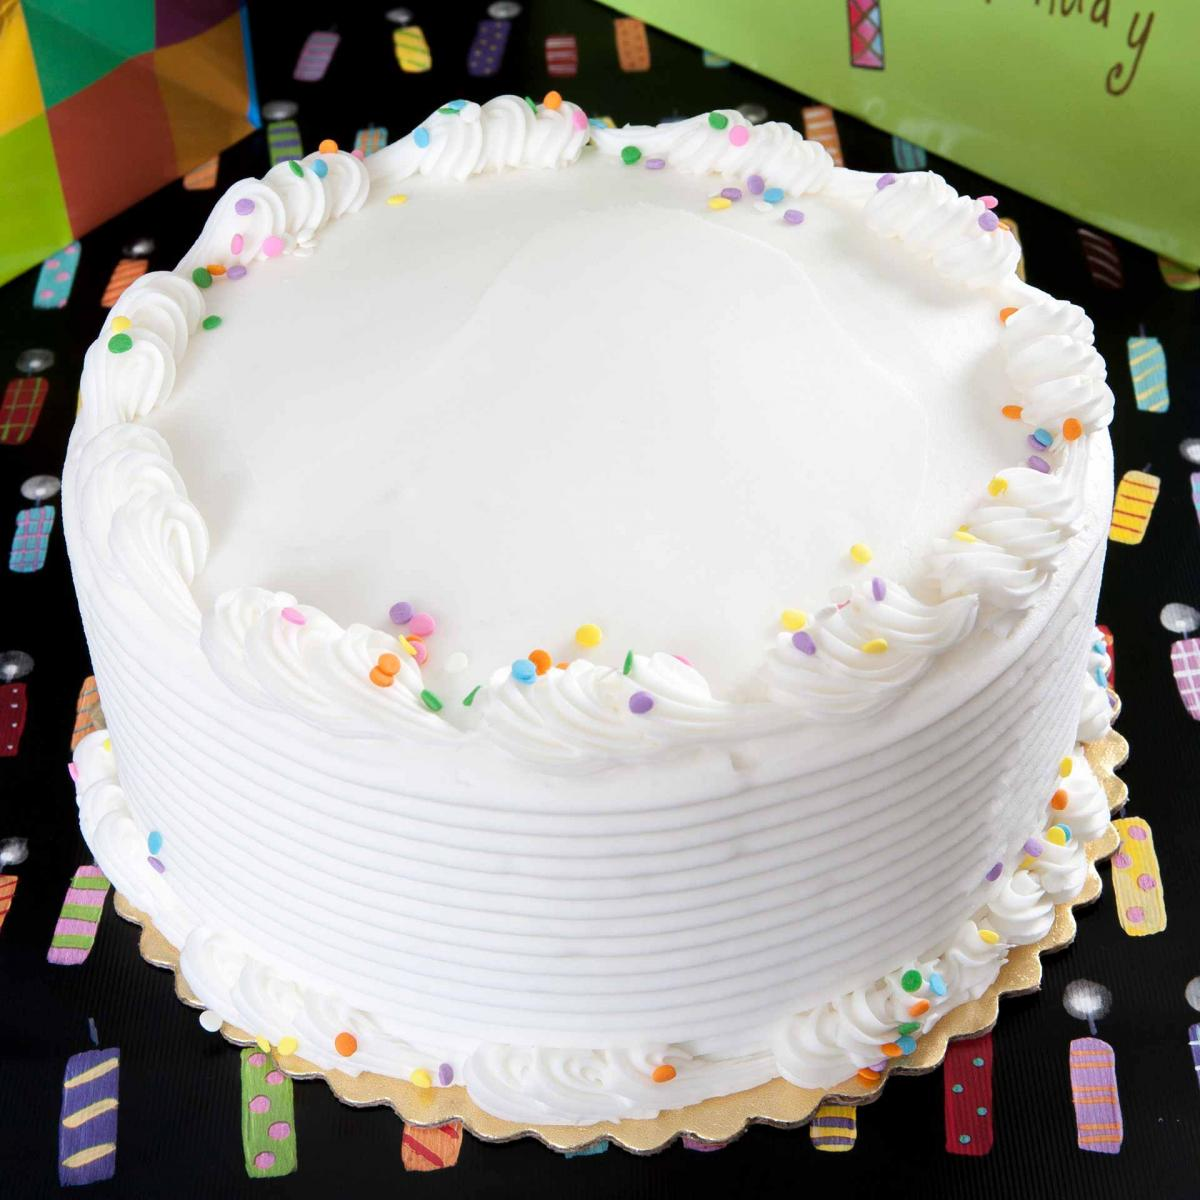 White frosted cake with sprinkles on candle wrapping paper